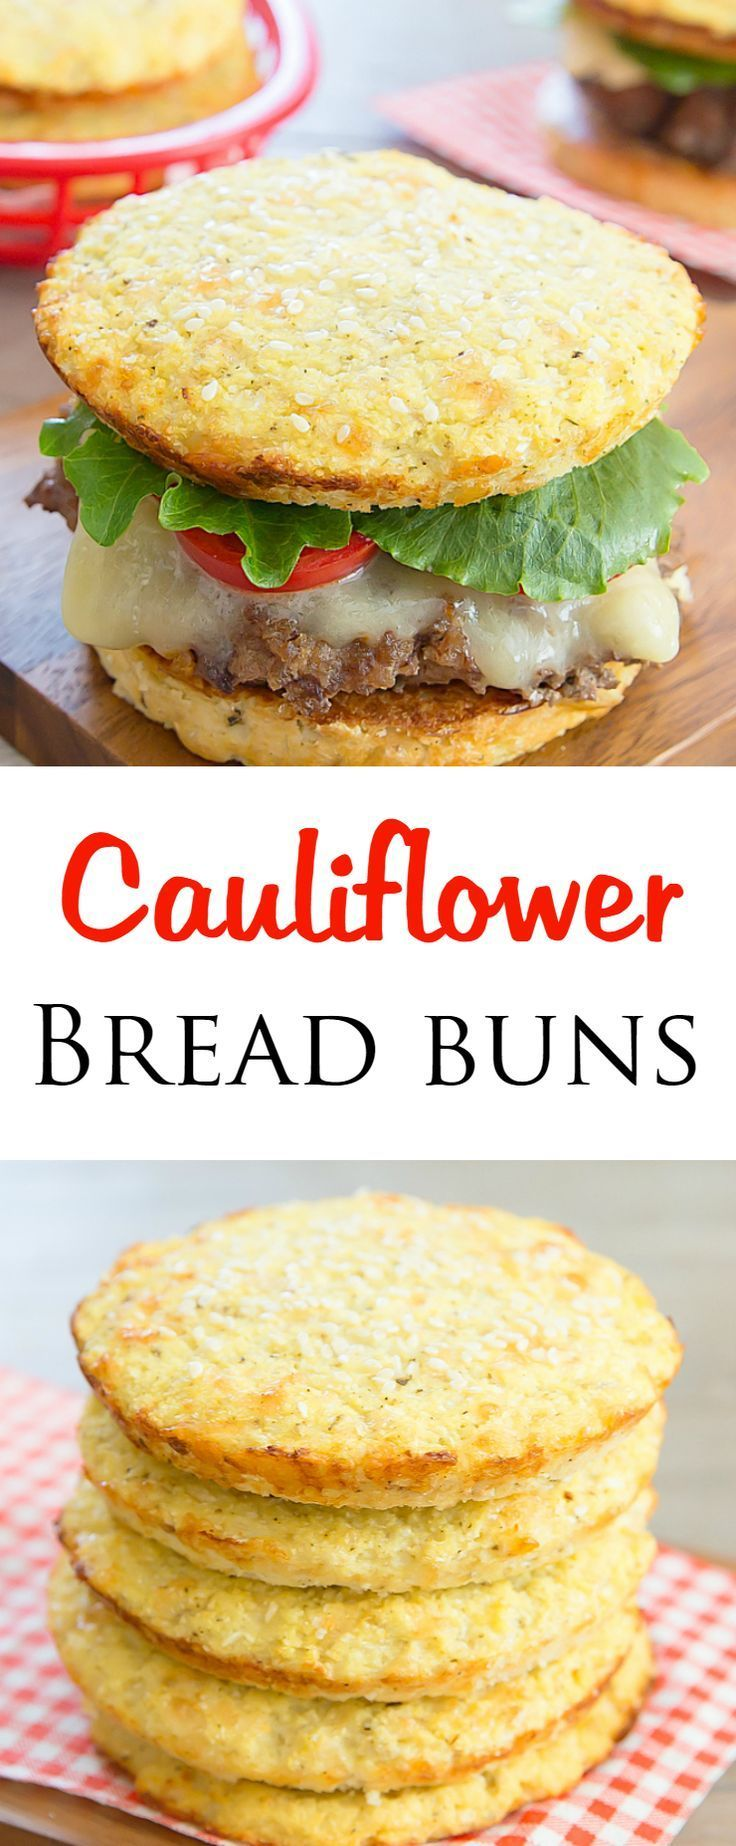 Gluten-Free Cauliflower Bread Buns | Kirbie's Cravings